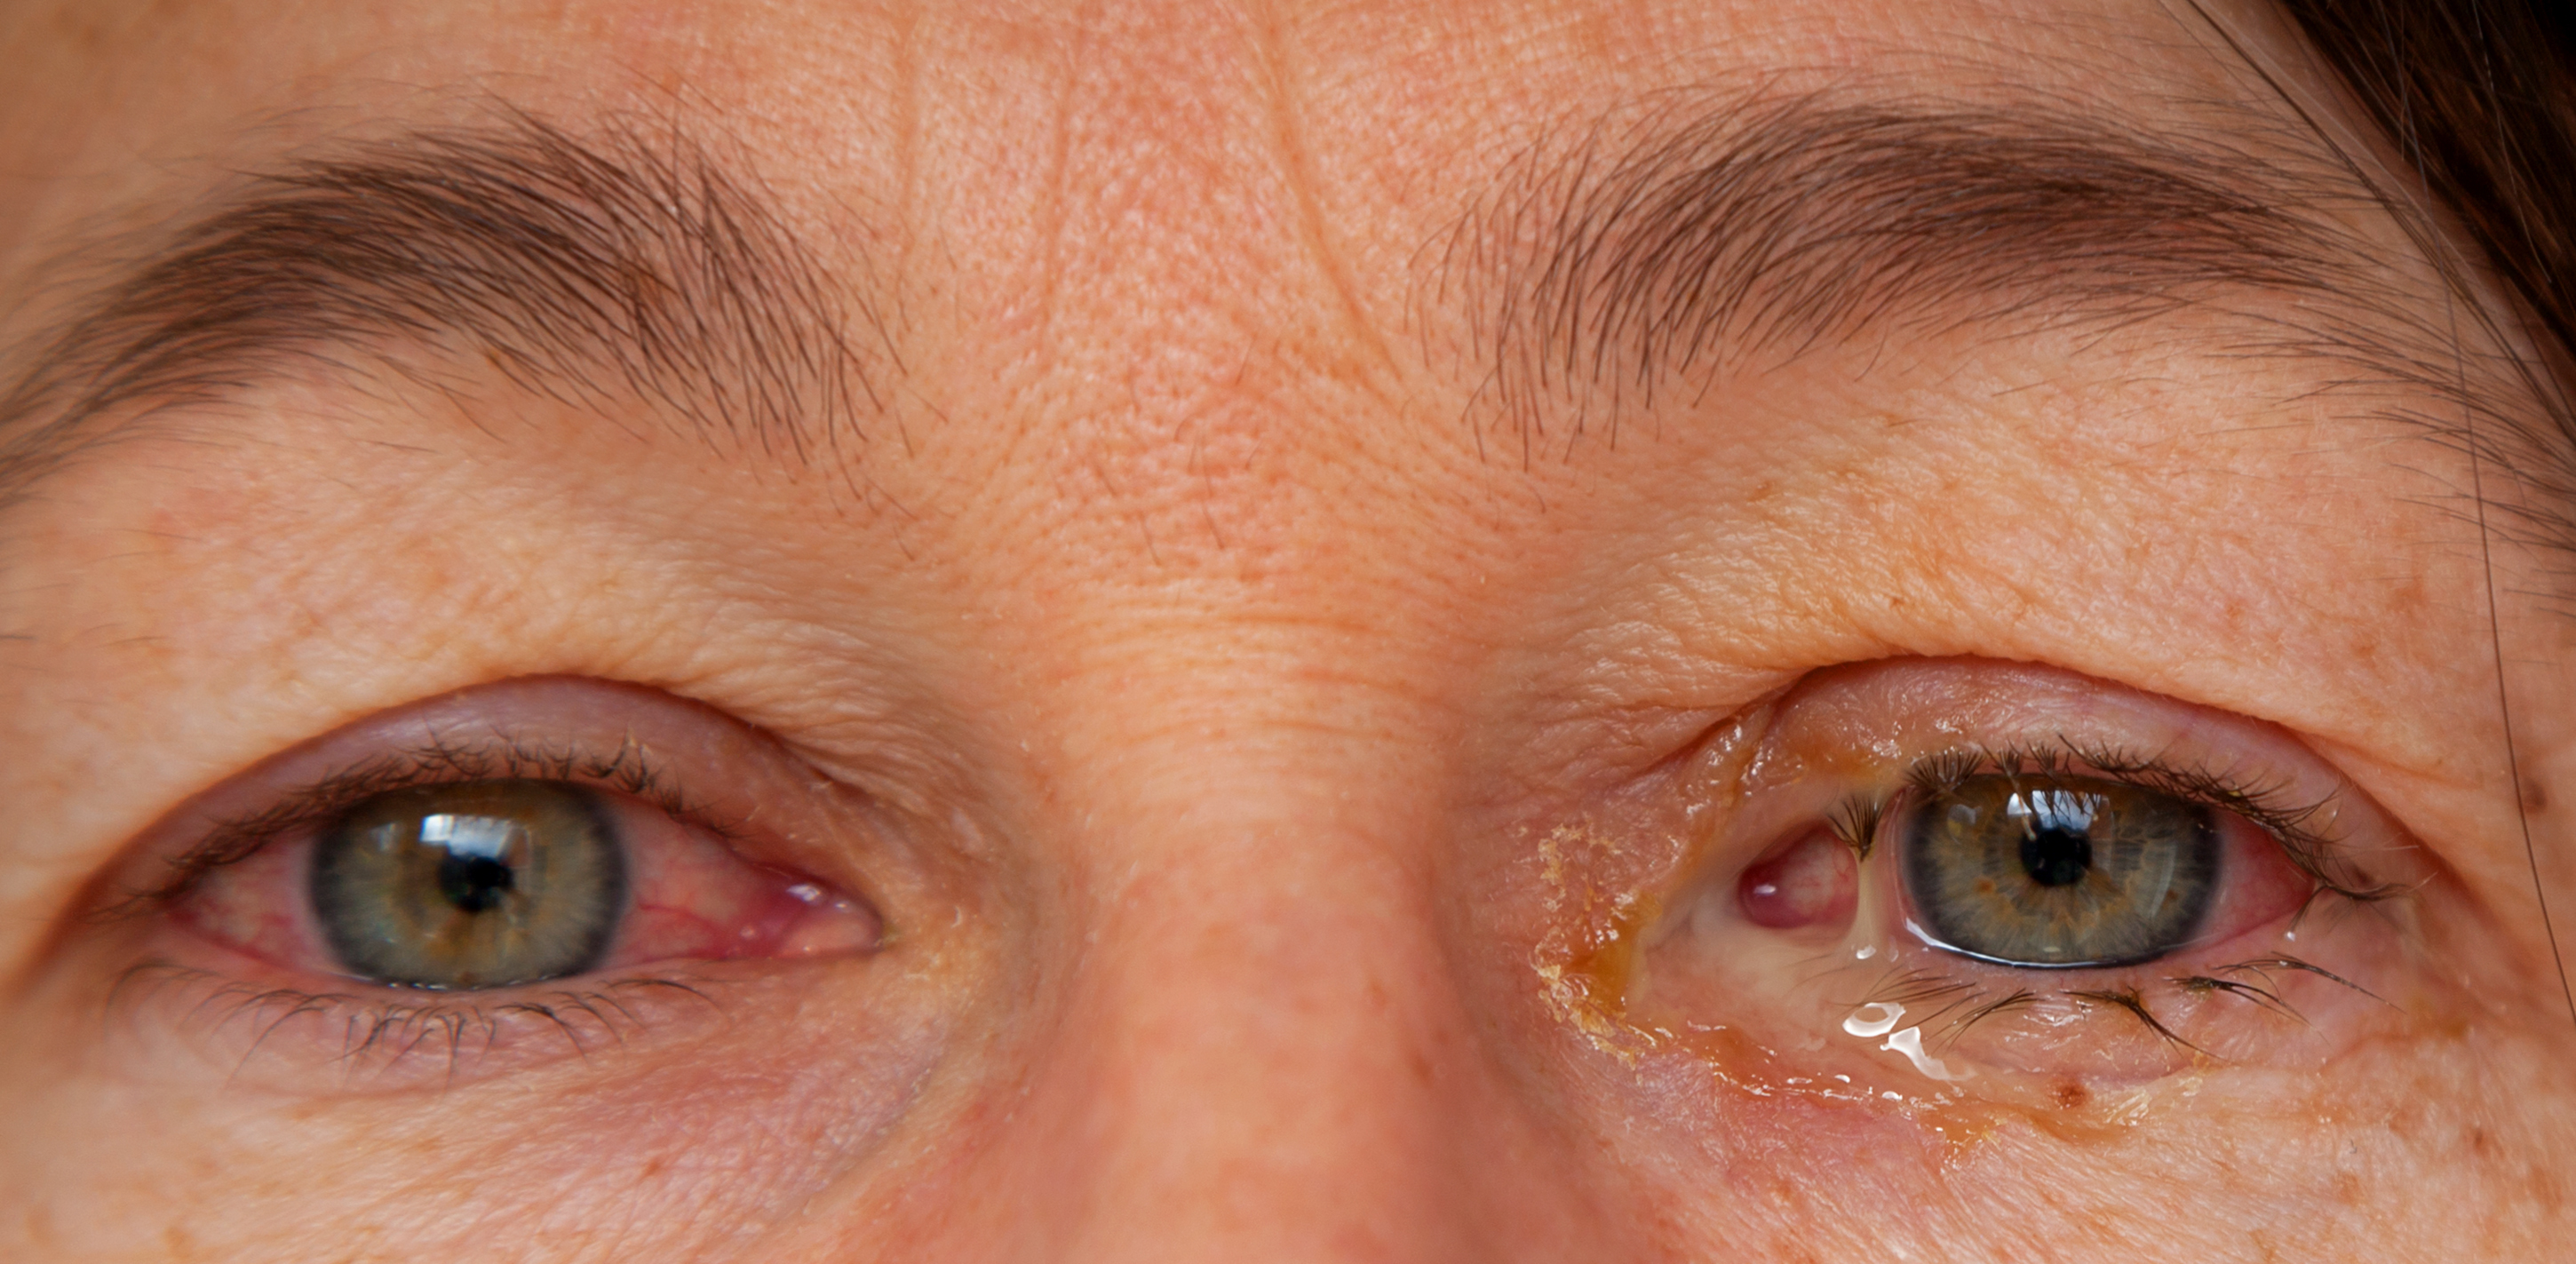 6 Eye Discharge Causes | How to Treat Discharge From the Eye